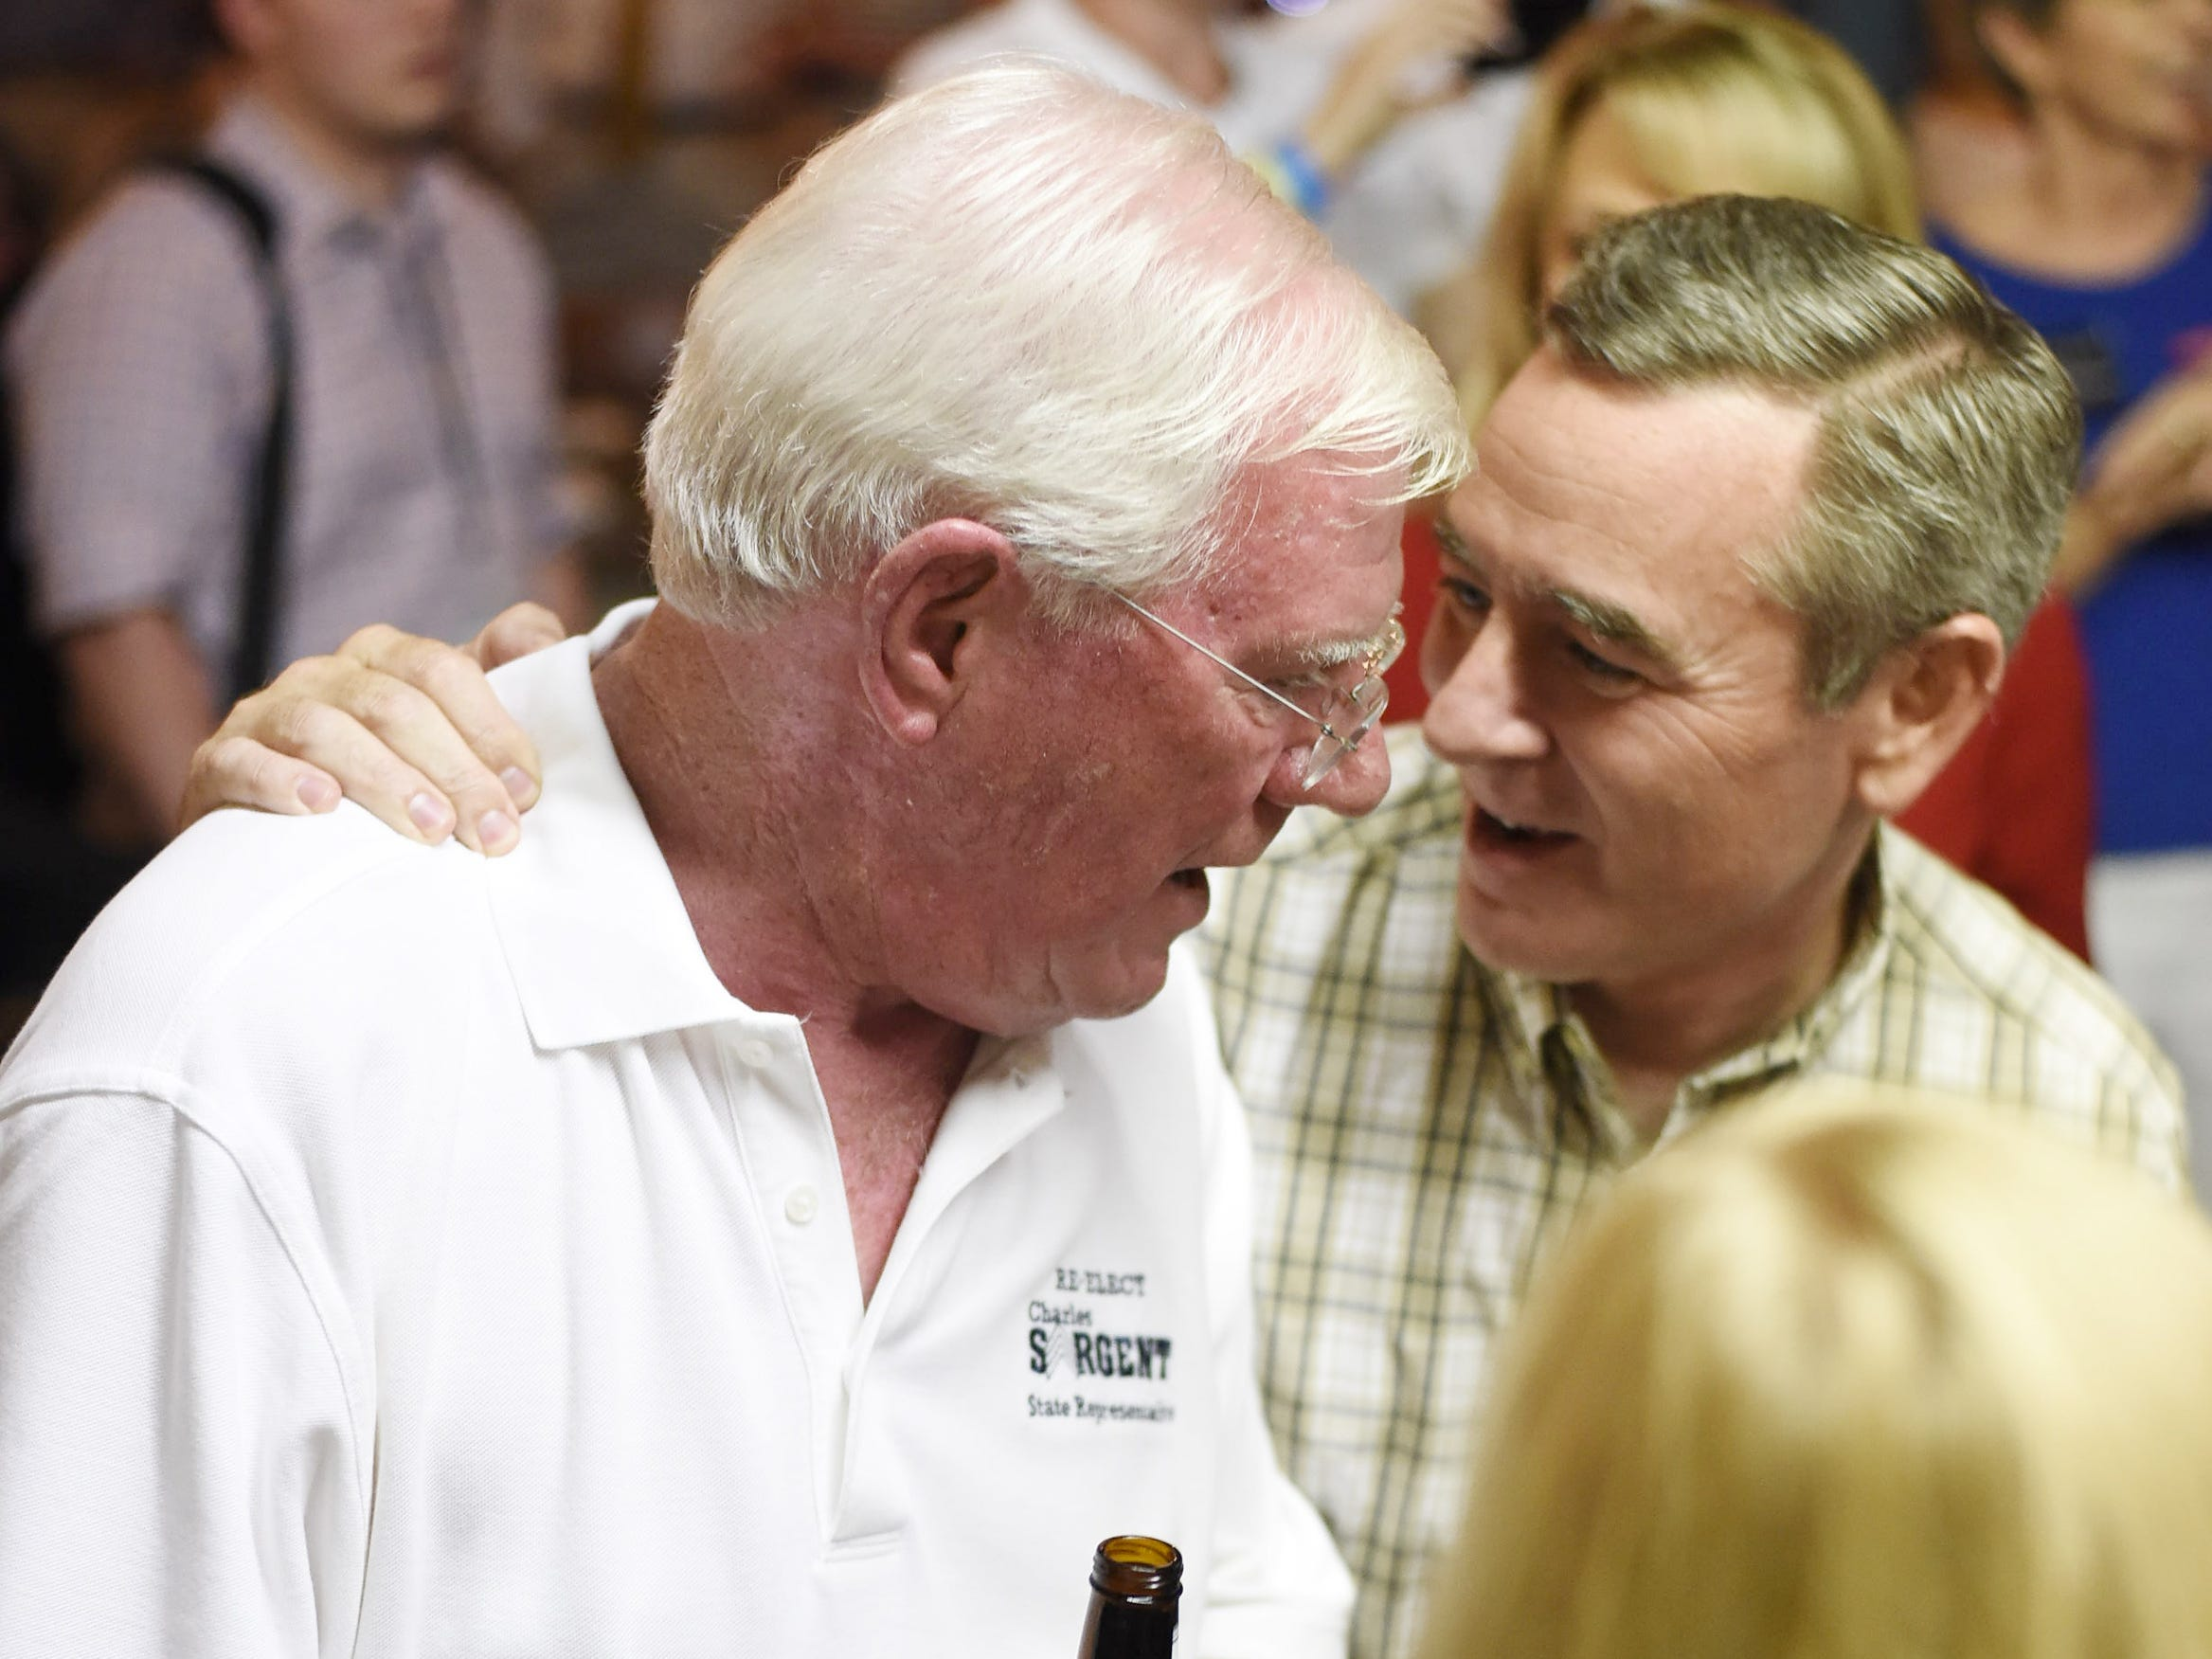 State Rep. Charles Sargent, left, is greeted by Rep. Glen Casada at Puckett's Grocery & Restaurant in Franklin on Aug. 4, 2016. Sargent won the race for District 61 in the GOP primary, and Casada won District 63 uncontested.